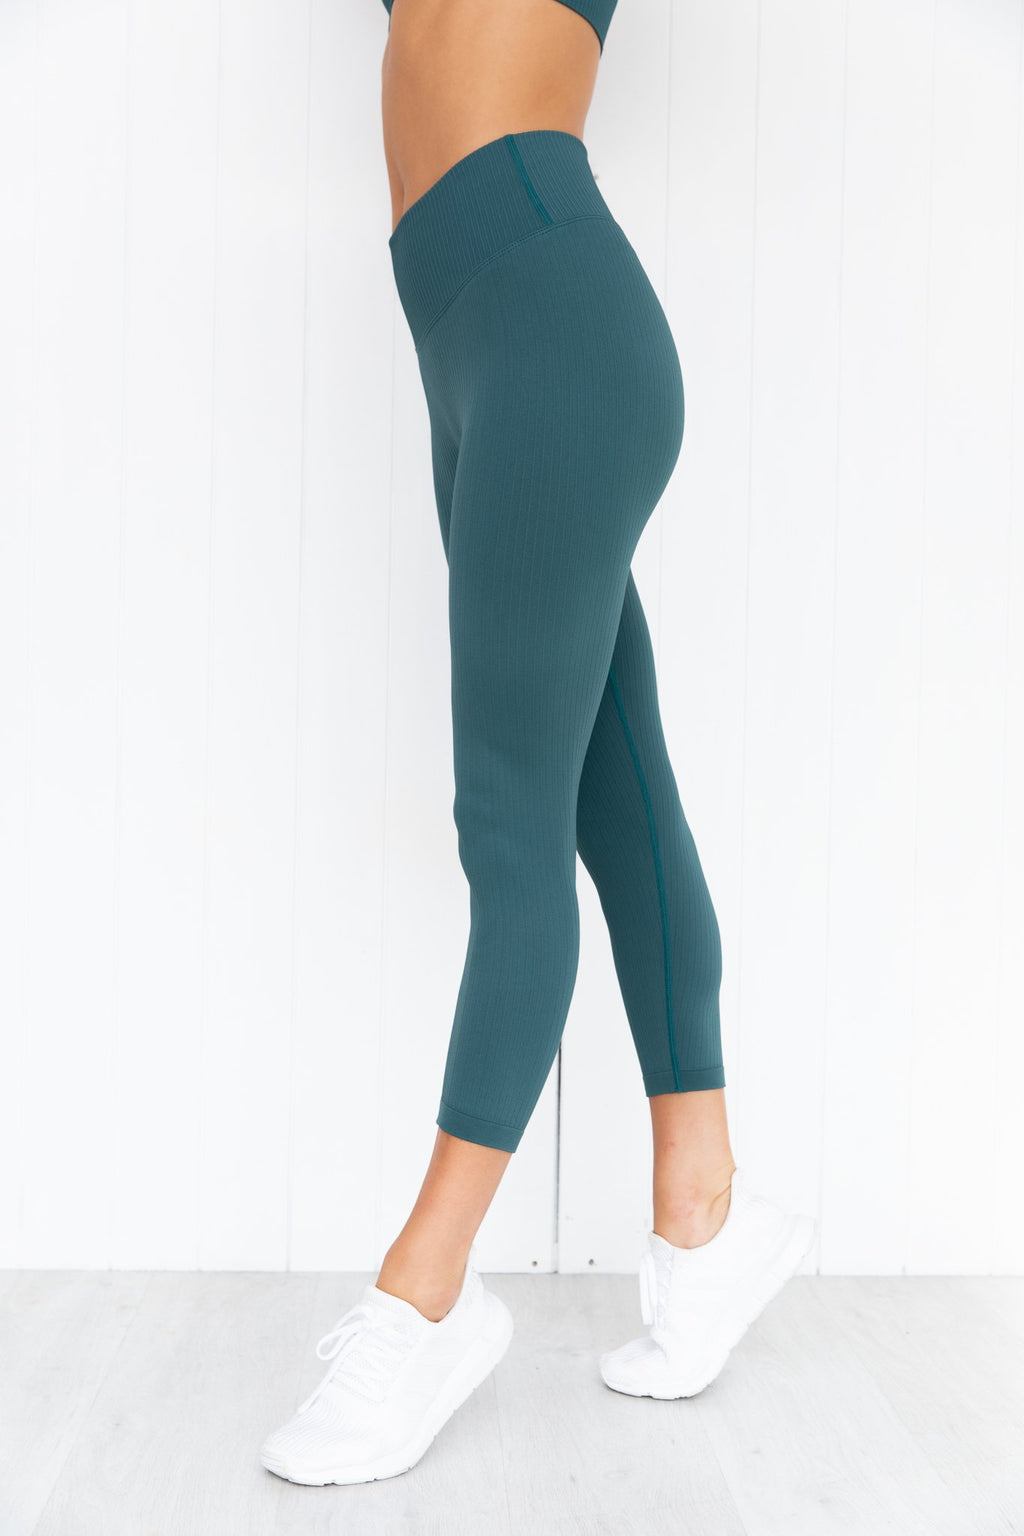 Hydro Ribbed Seamless 7/8 Tights